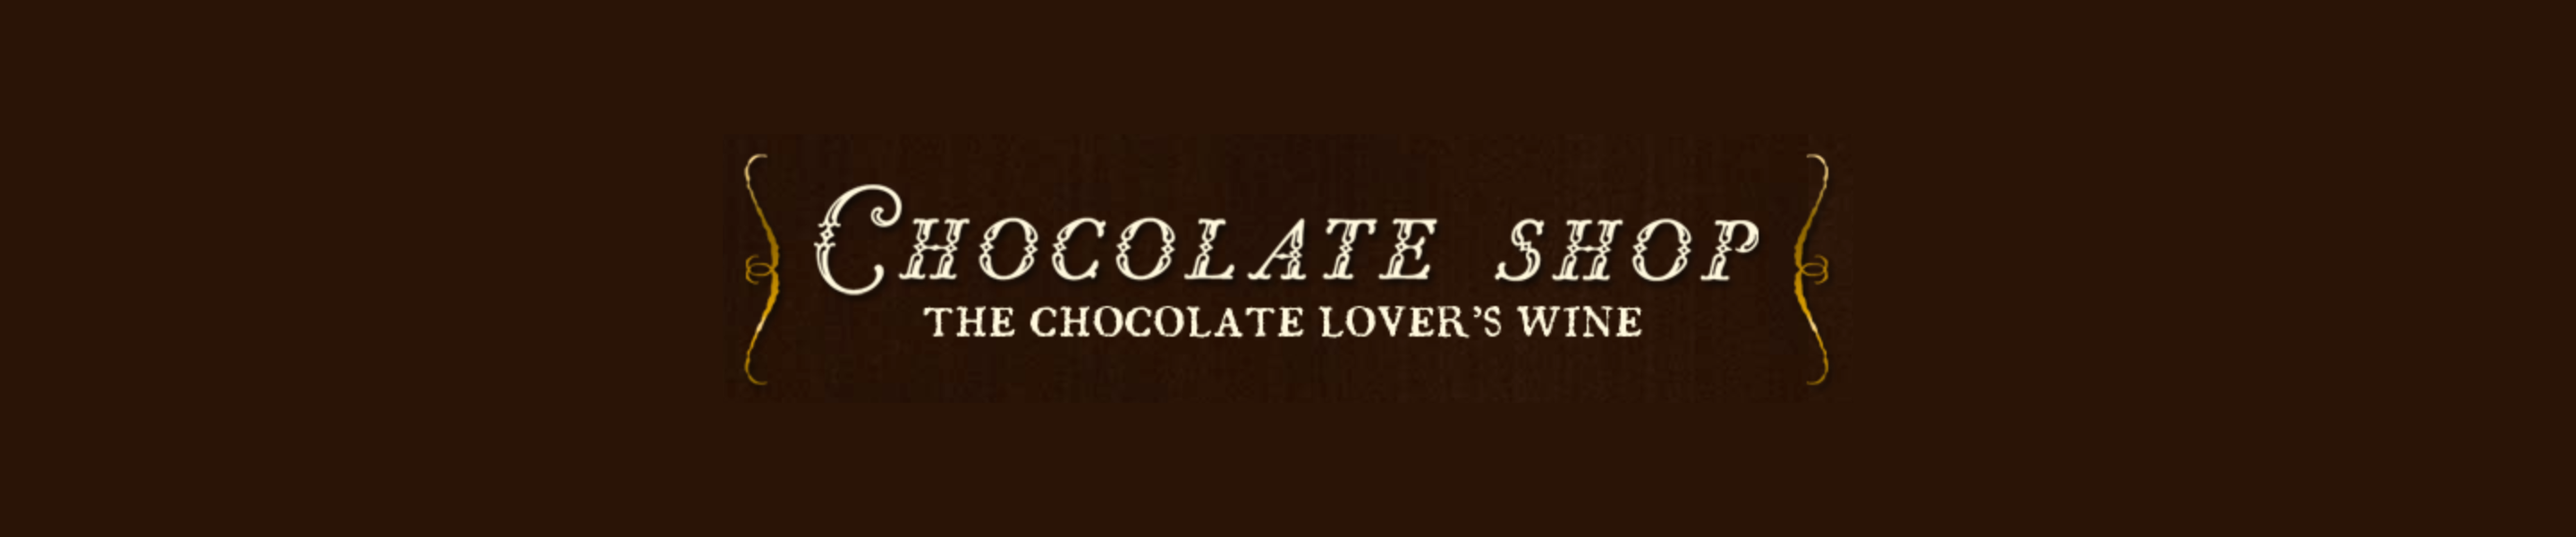 A category pioneer, Chocolate Shop has established itself as a sweet, everyday indulgence. With consistent consumer demand and valuable trade endorsements, Chocolate Ship is a simple, crowd-pleasing, single SKU proposition.